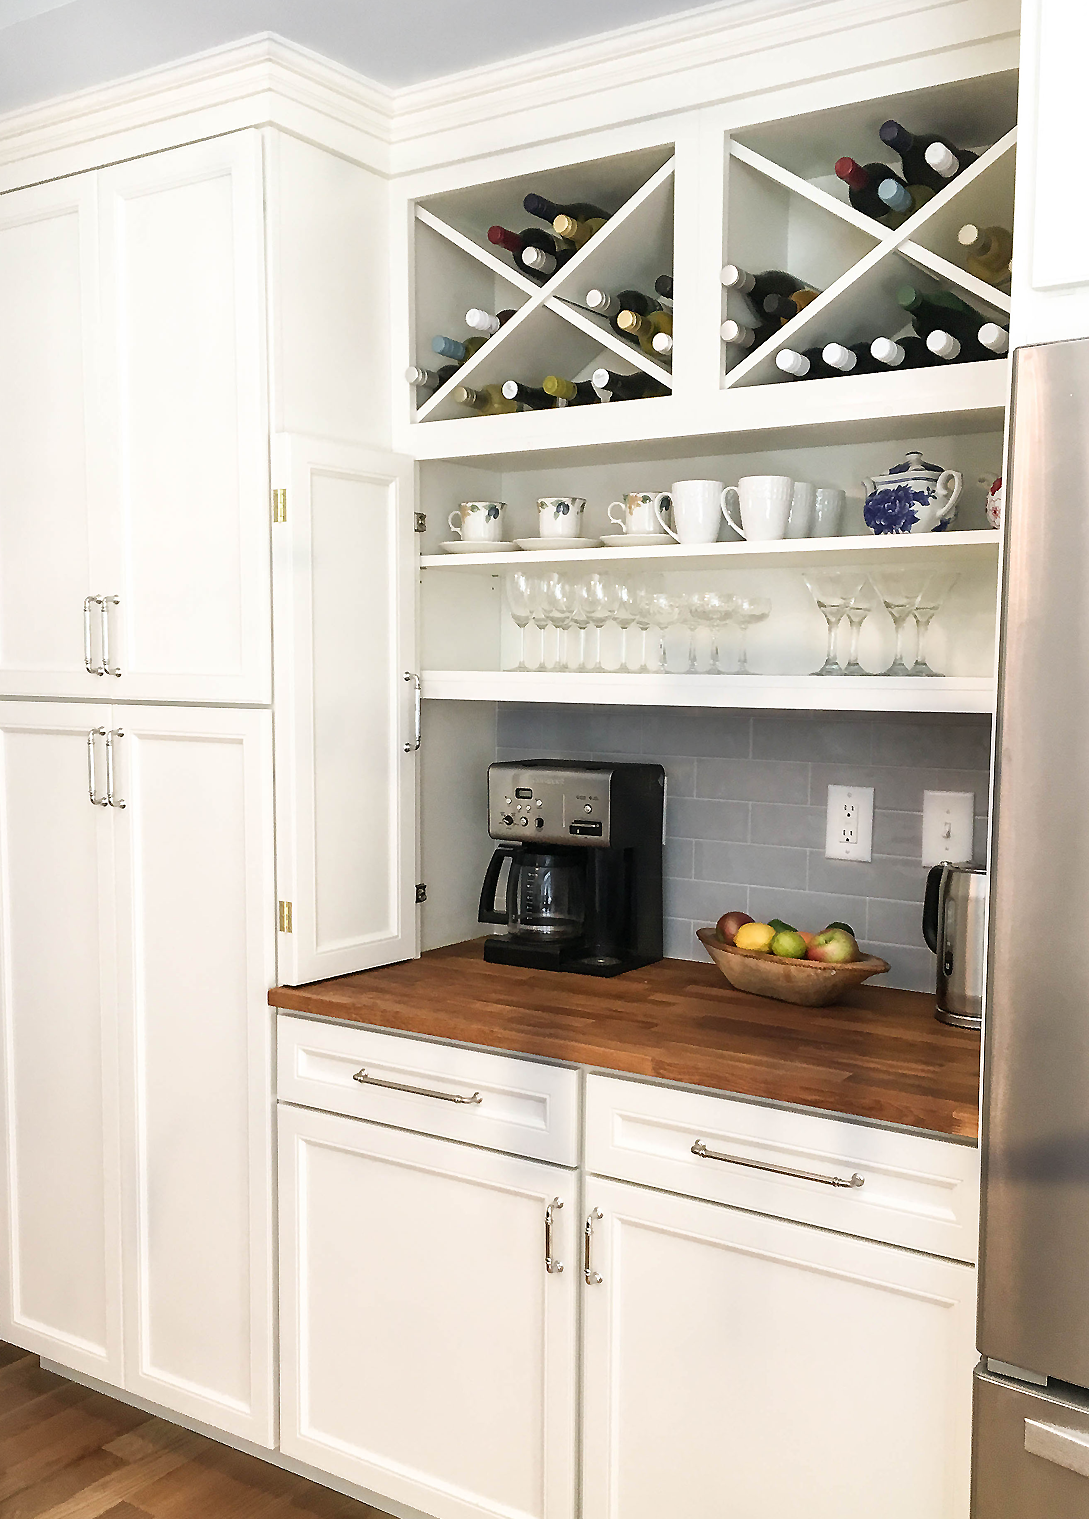 Off White Cabinets With Winebar And Coffeestation Online Kitchen Cabinets Kitchen Cupboard Designs Buy Kitchen Cabinets